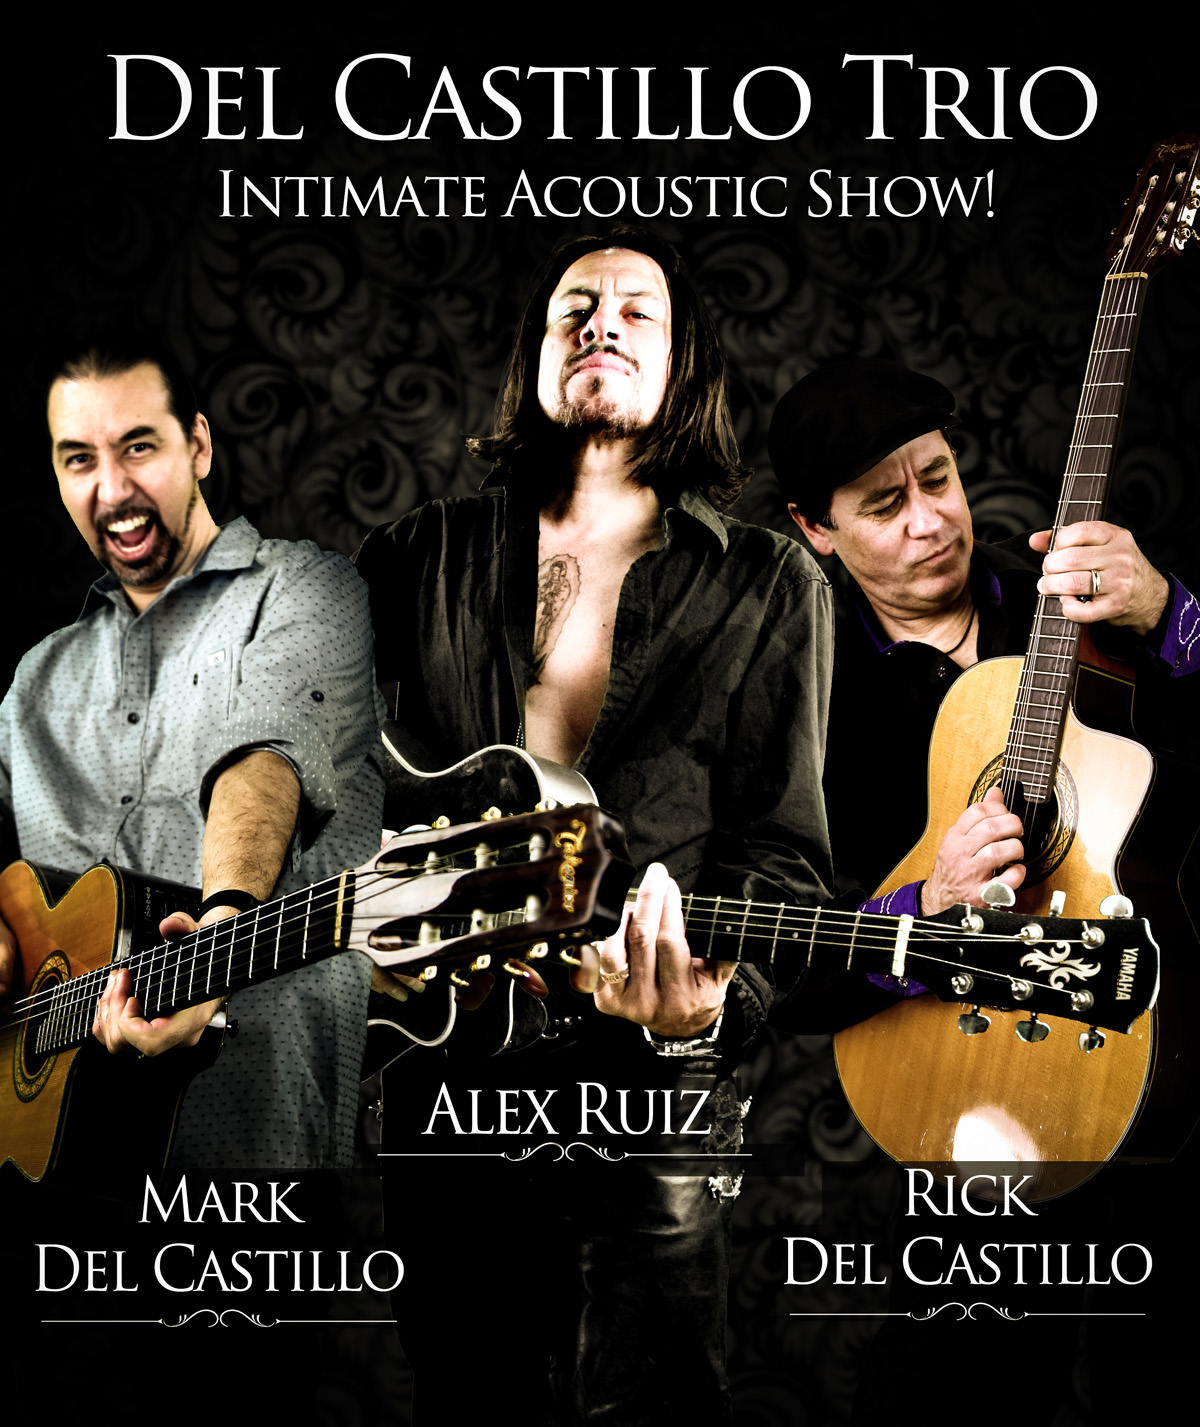 Experience the enchanting musical moods displayed by this amazing group!